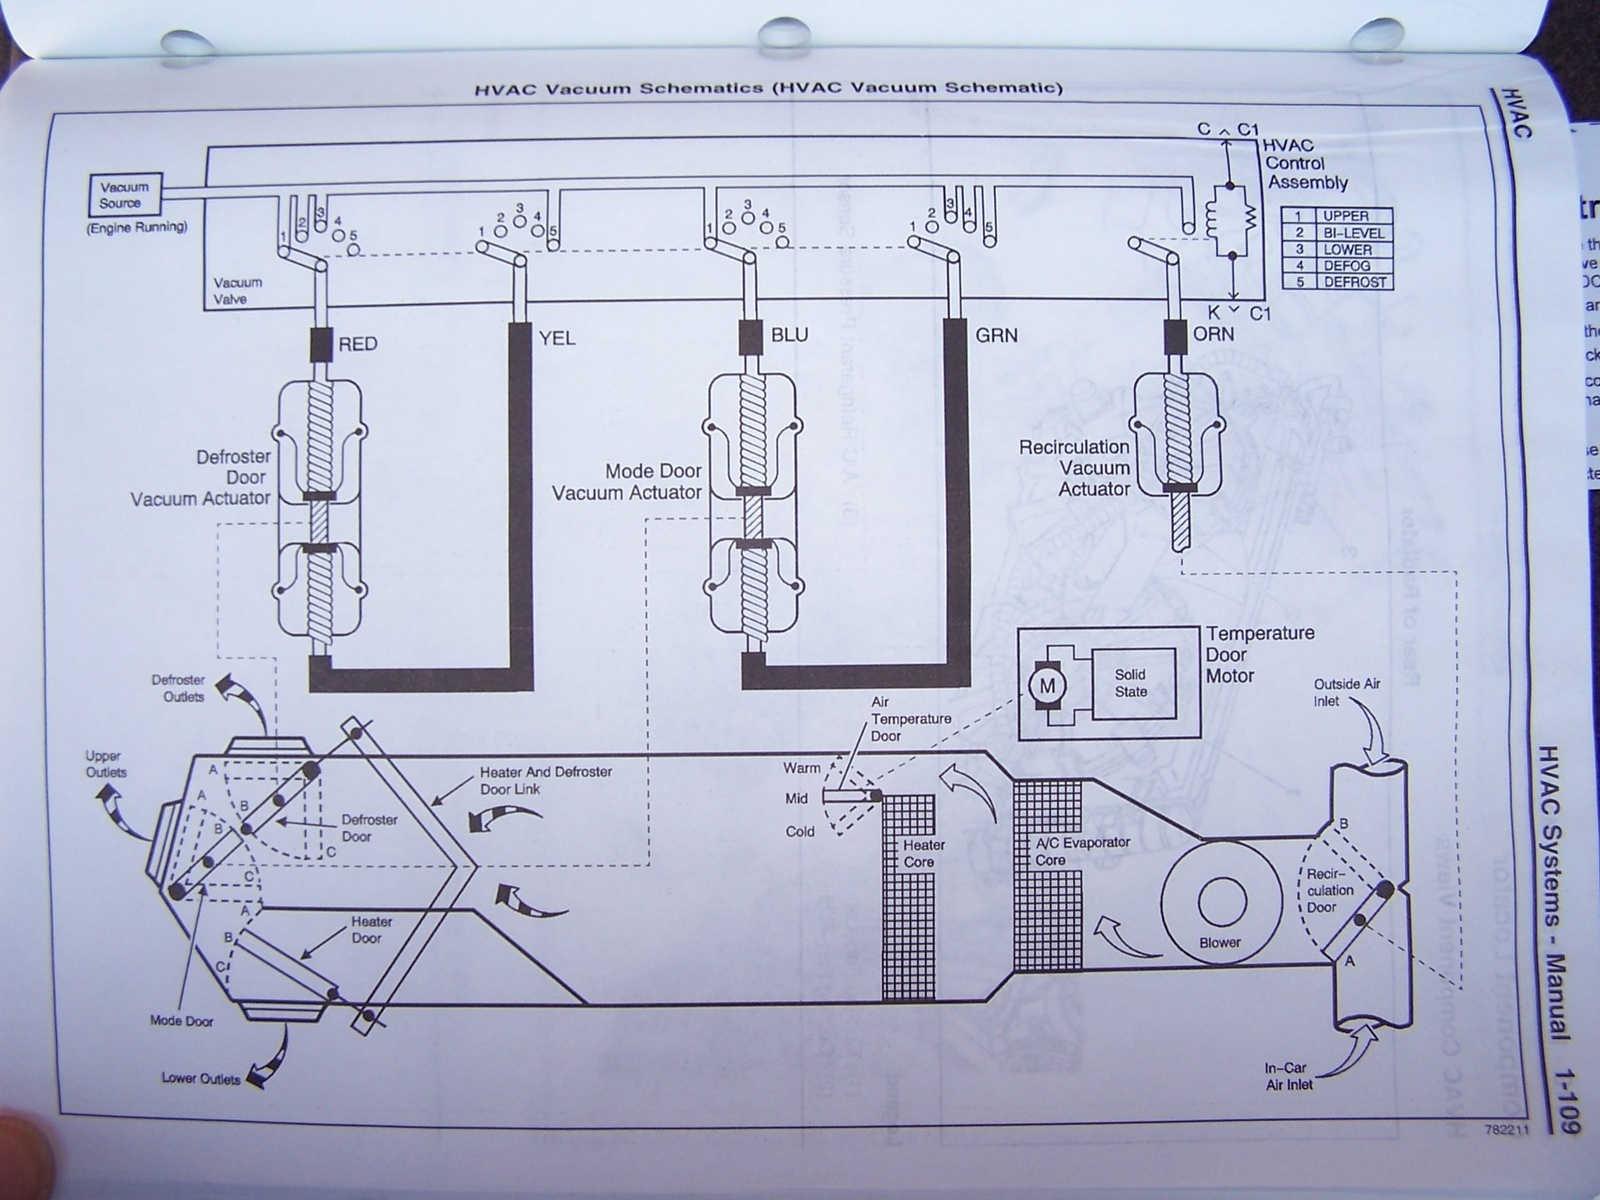 oldsmobile 350 wiring diagram all diagram schematics 1987 Cutlass Supreme Wiring Diagram 87 cutl engine wiring diagram wiring